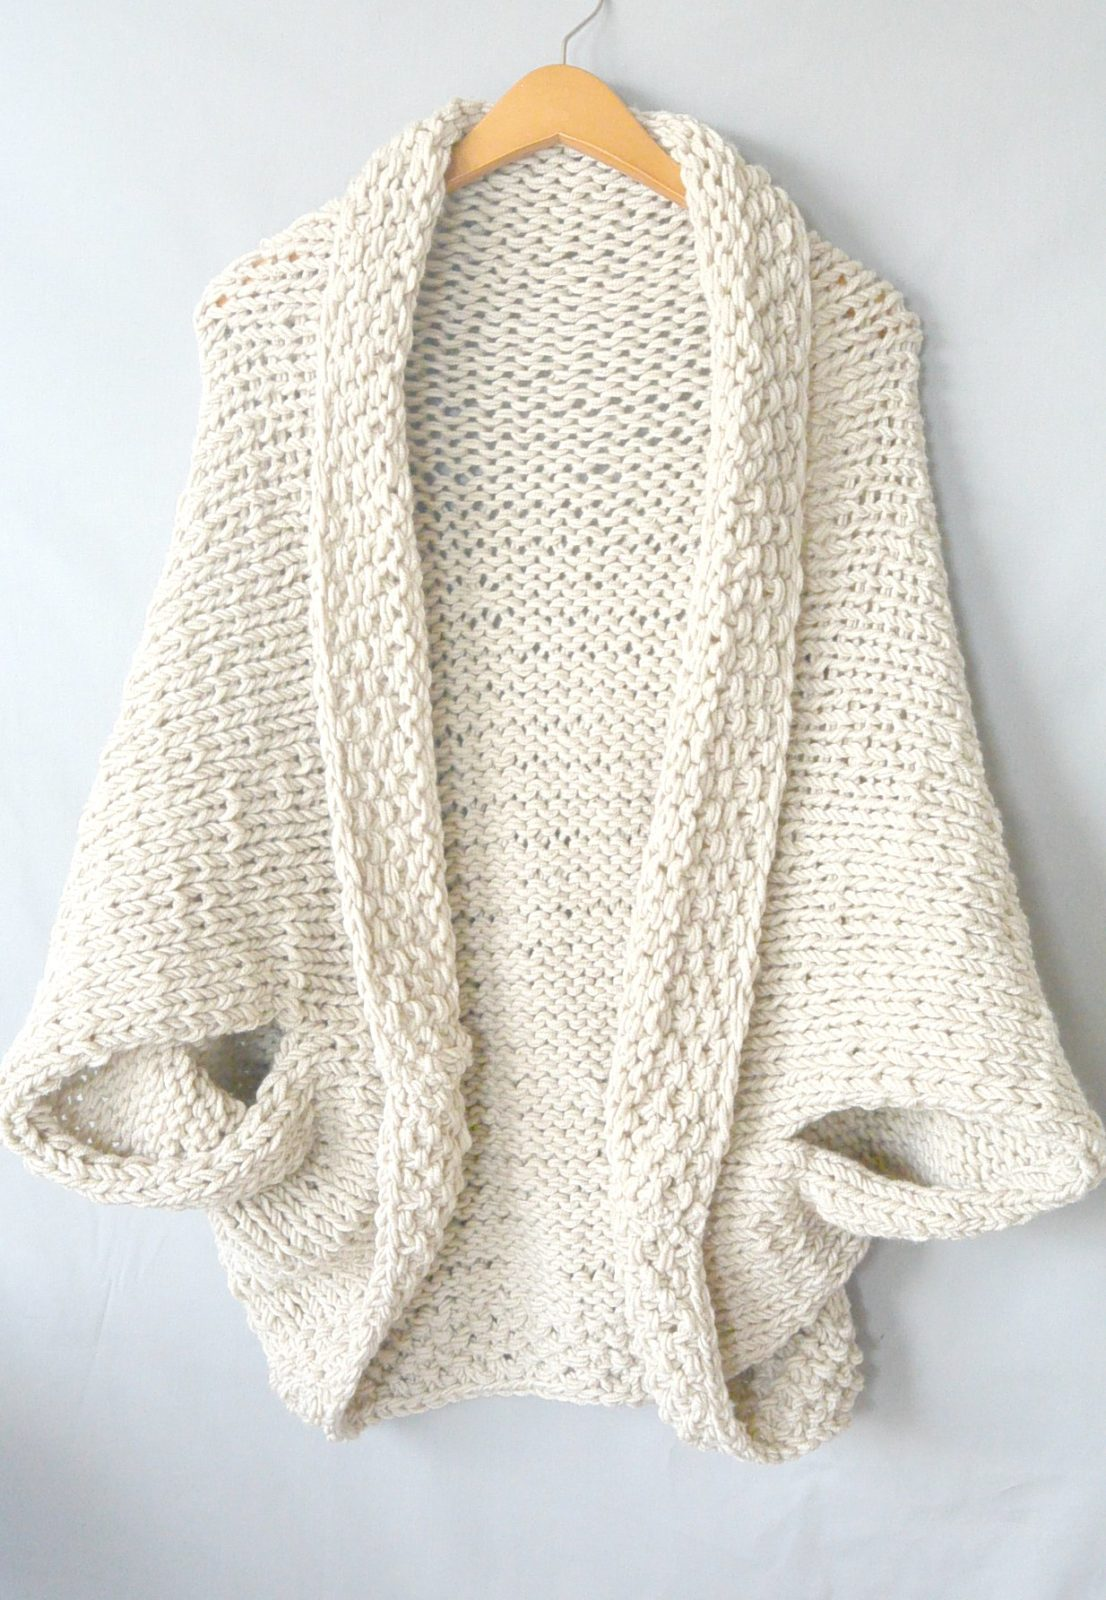 Easy Knit Patterns For Blankets : Easy Knit Blanket Sweater Pattern   Mama In A Stitch